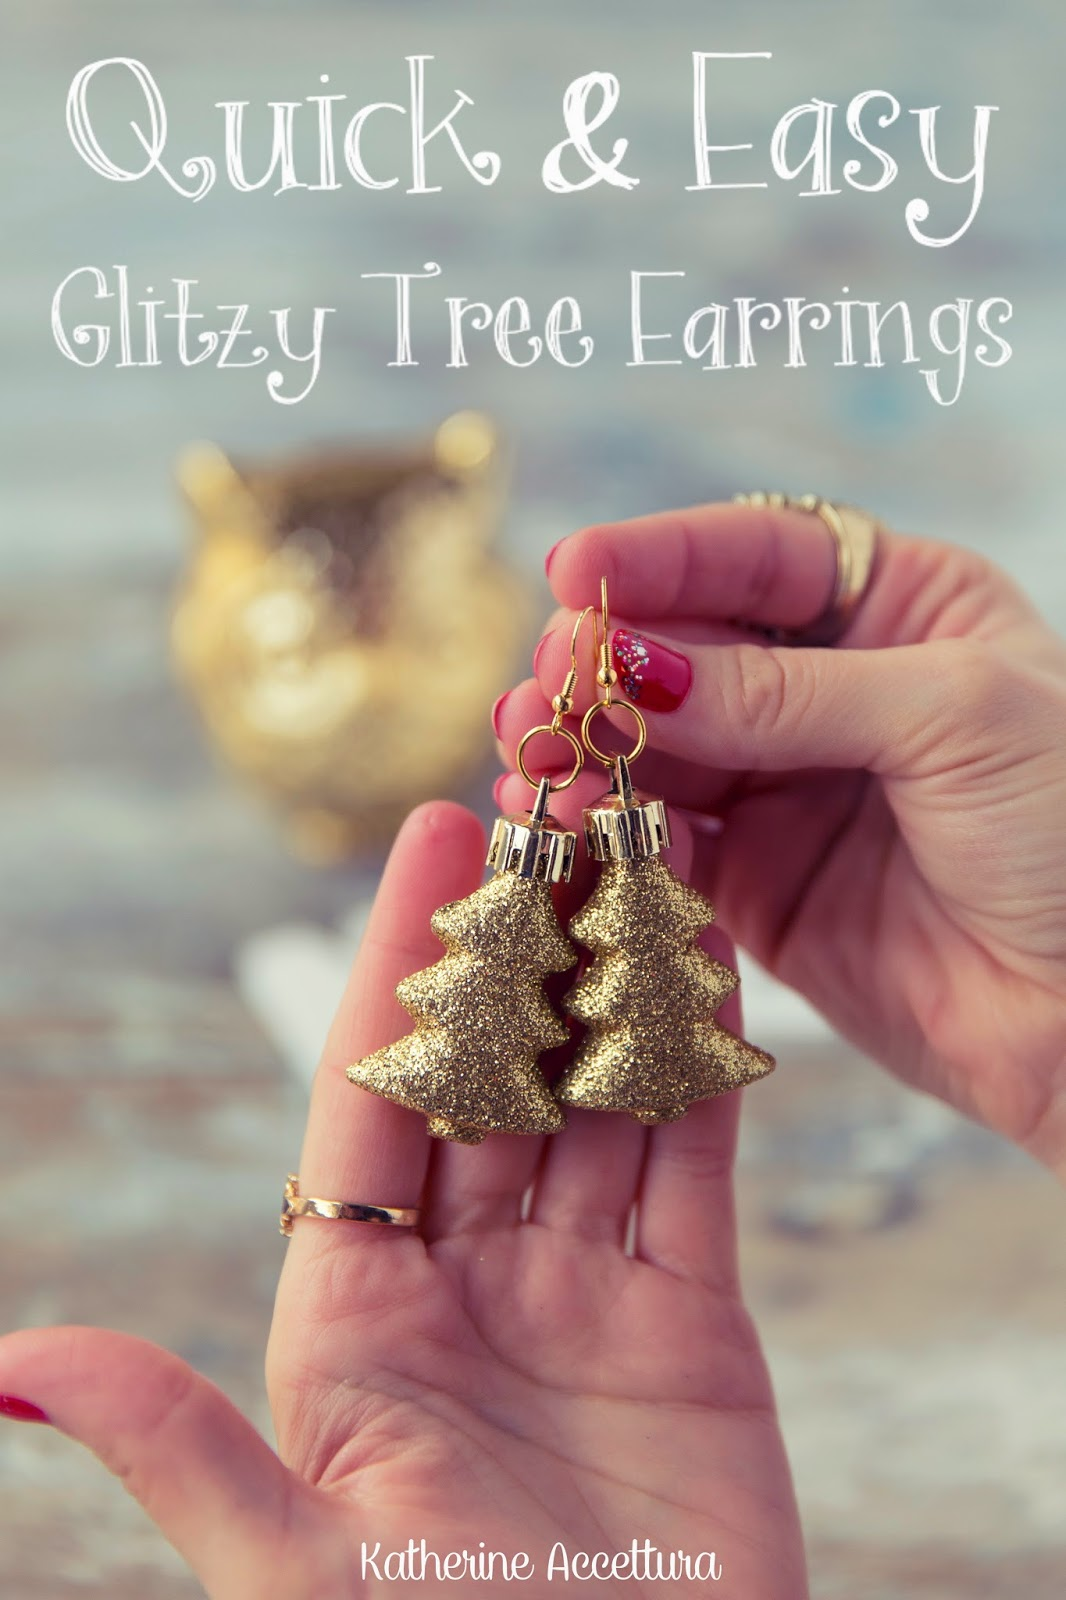 These  Glitzy Tree Earrings are also a cute and festive gift idea you could make for a friend, and then make yourself a matching pair! These turned out really great!